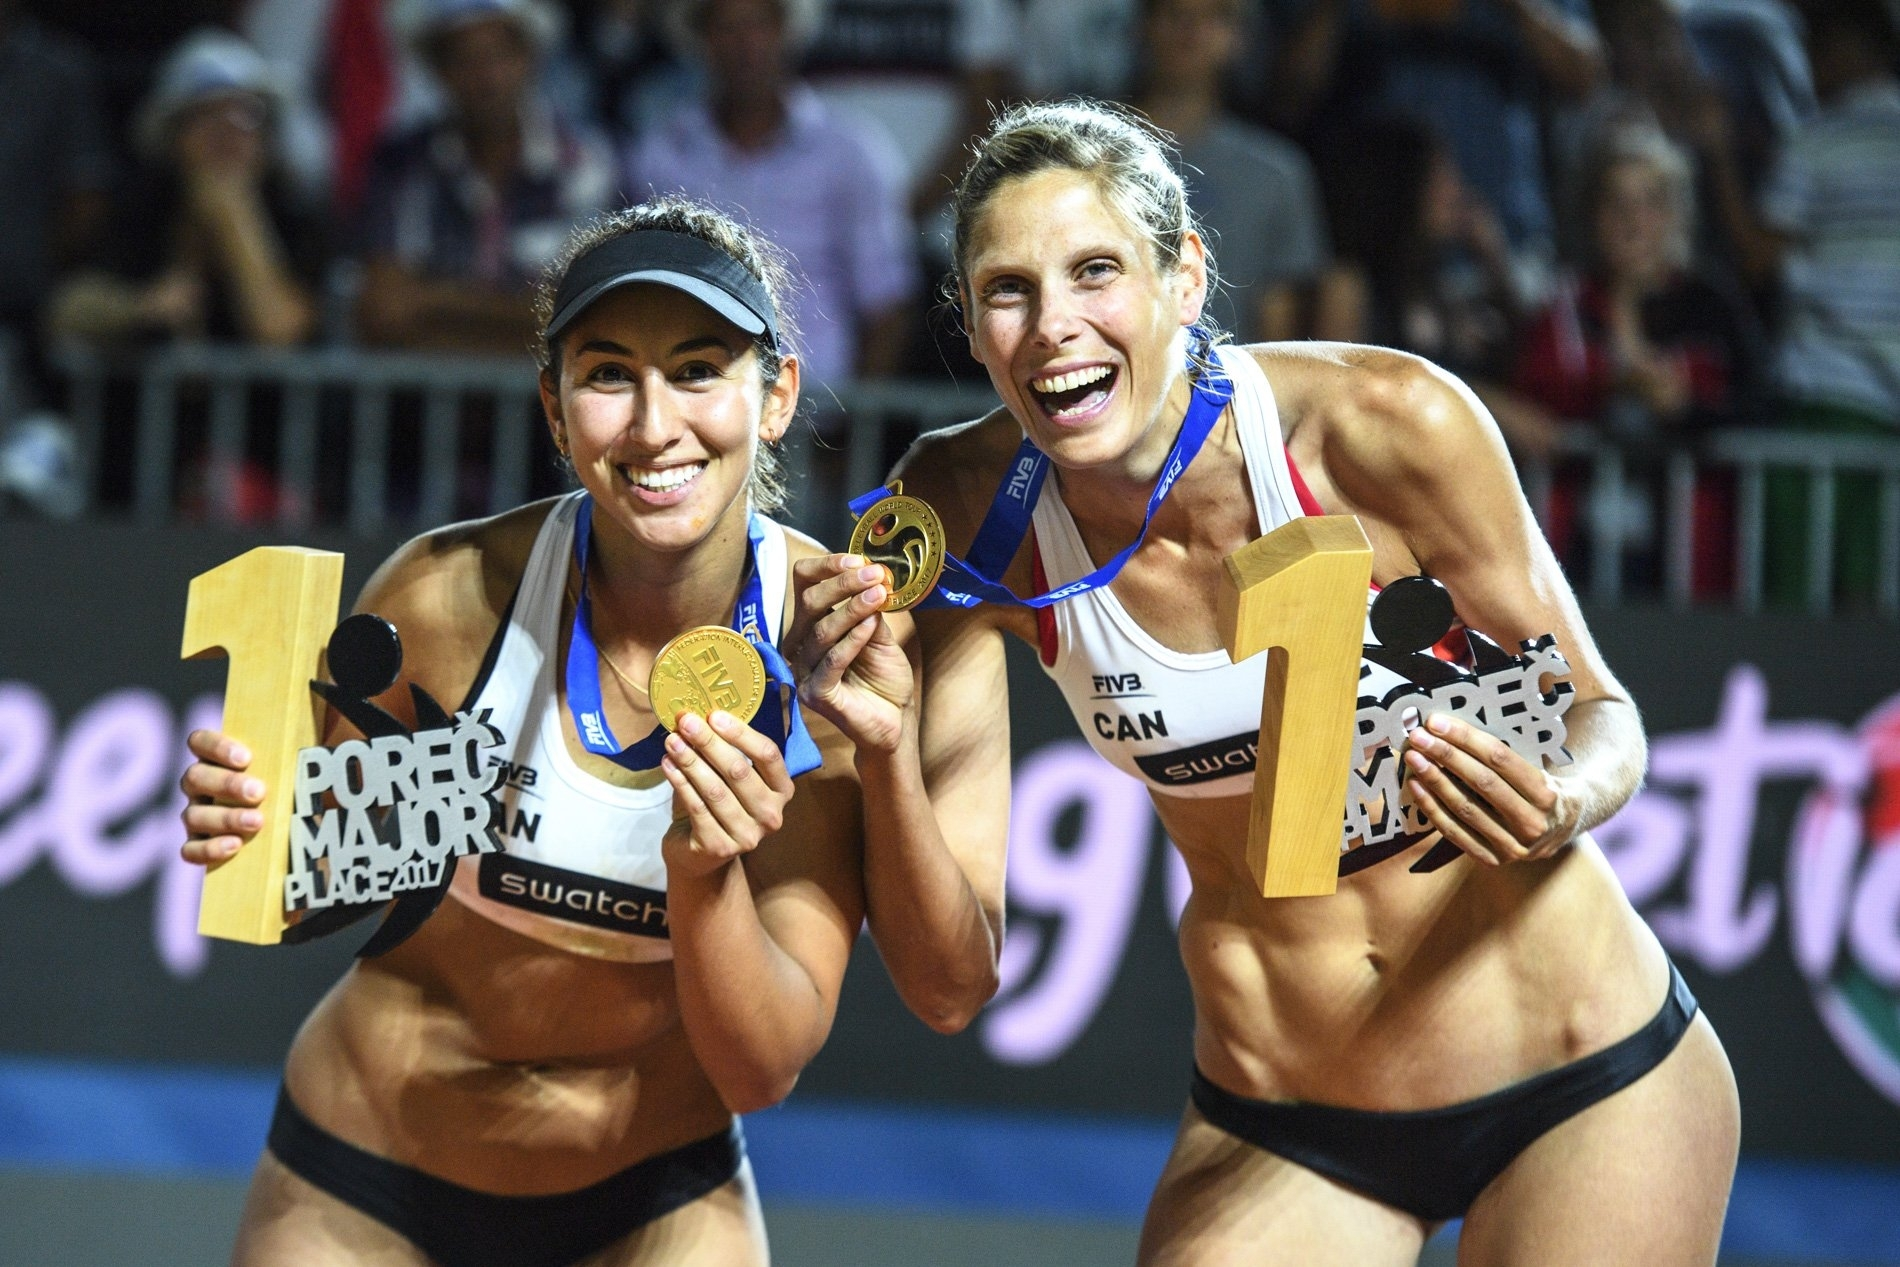 Sarah and Melissa won gold together at the Poreč Major